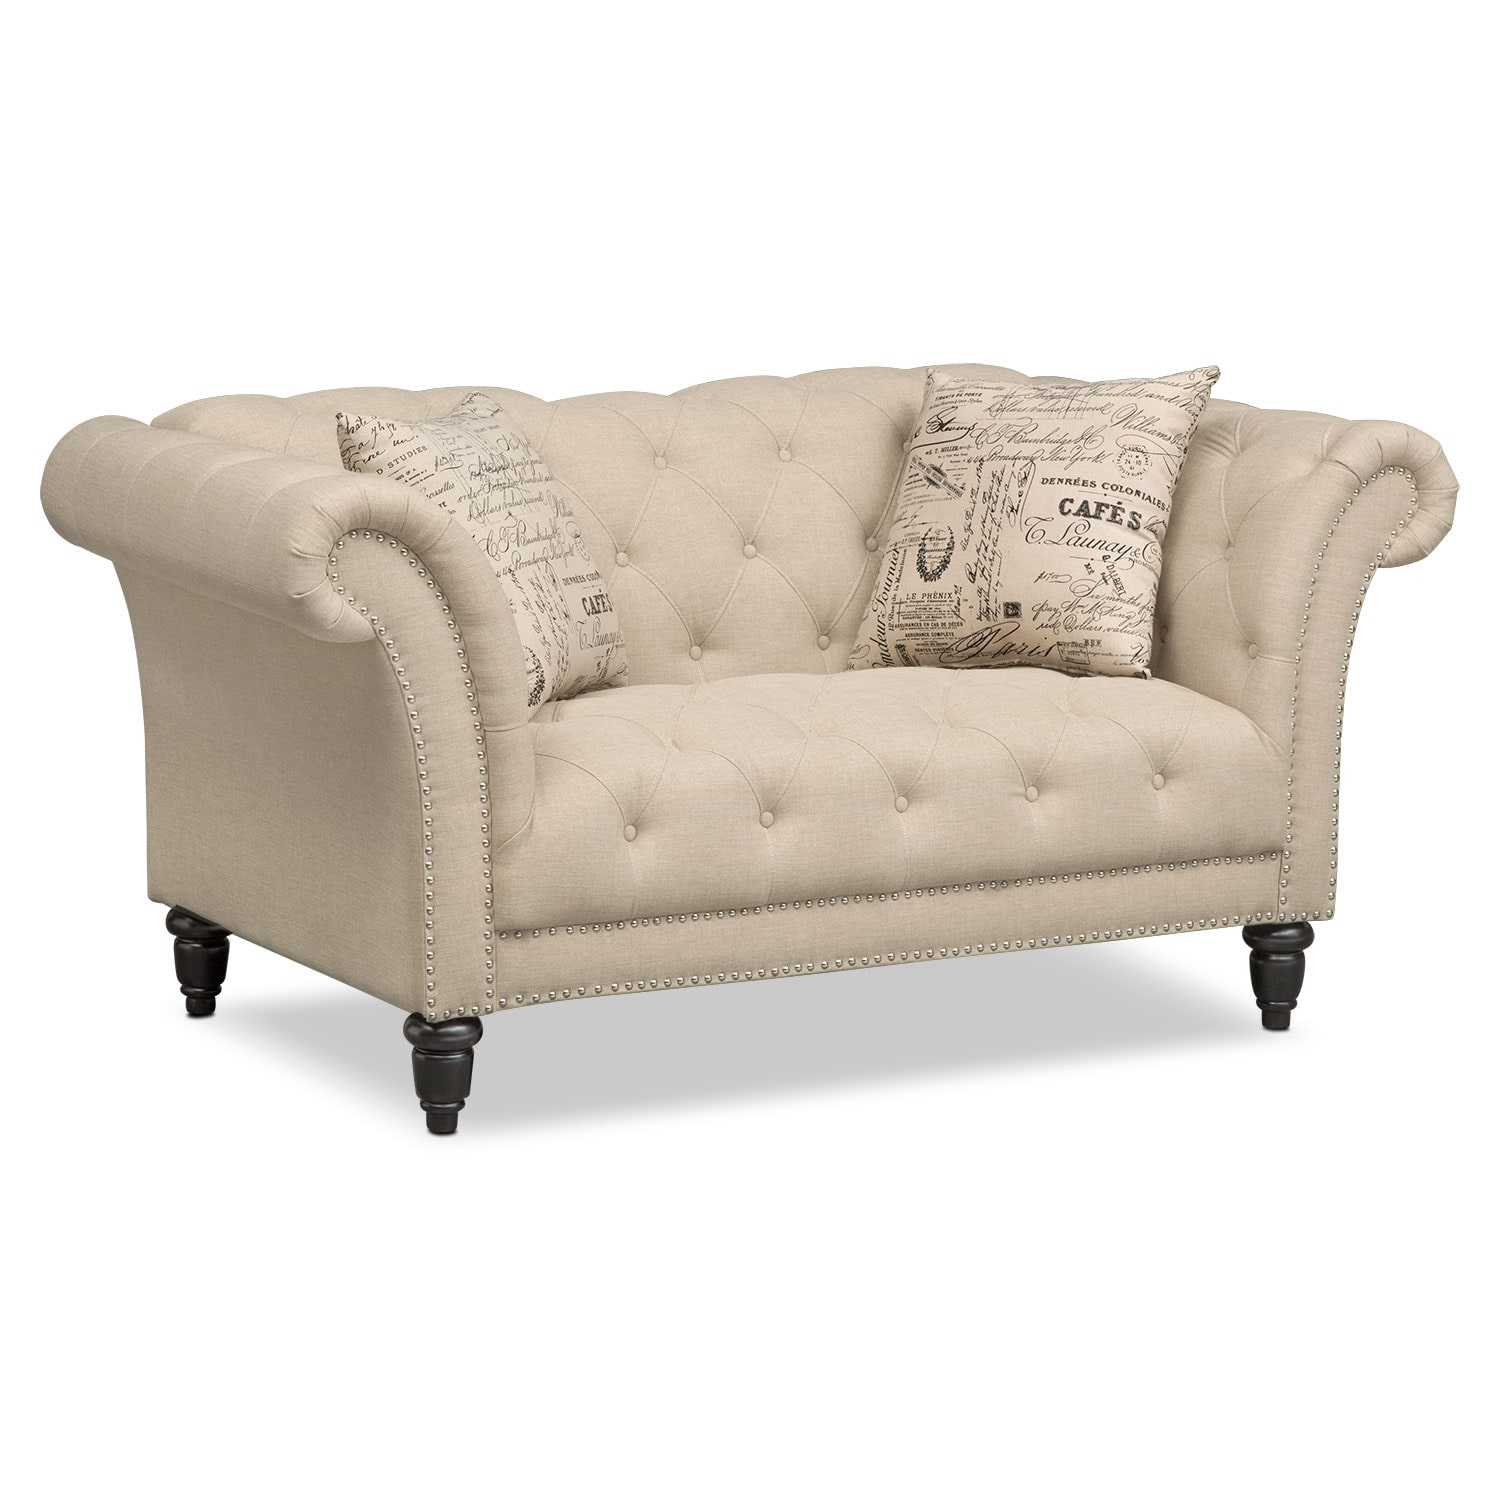 Marisol Sofa and Loveseat   Beige   Value City Furniture and Mattresses Marisol Sofa and Loveseat   Beige